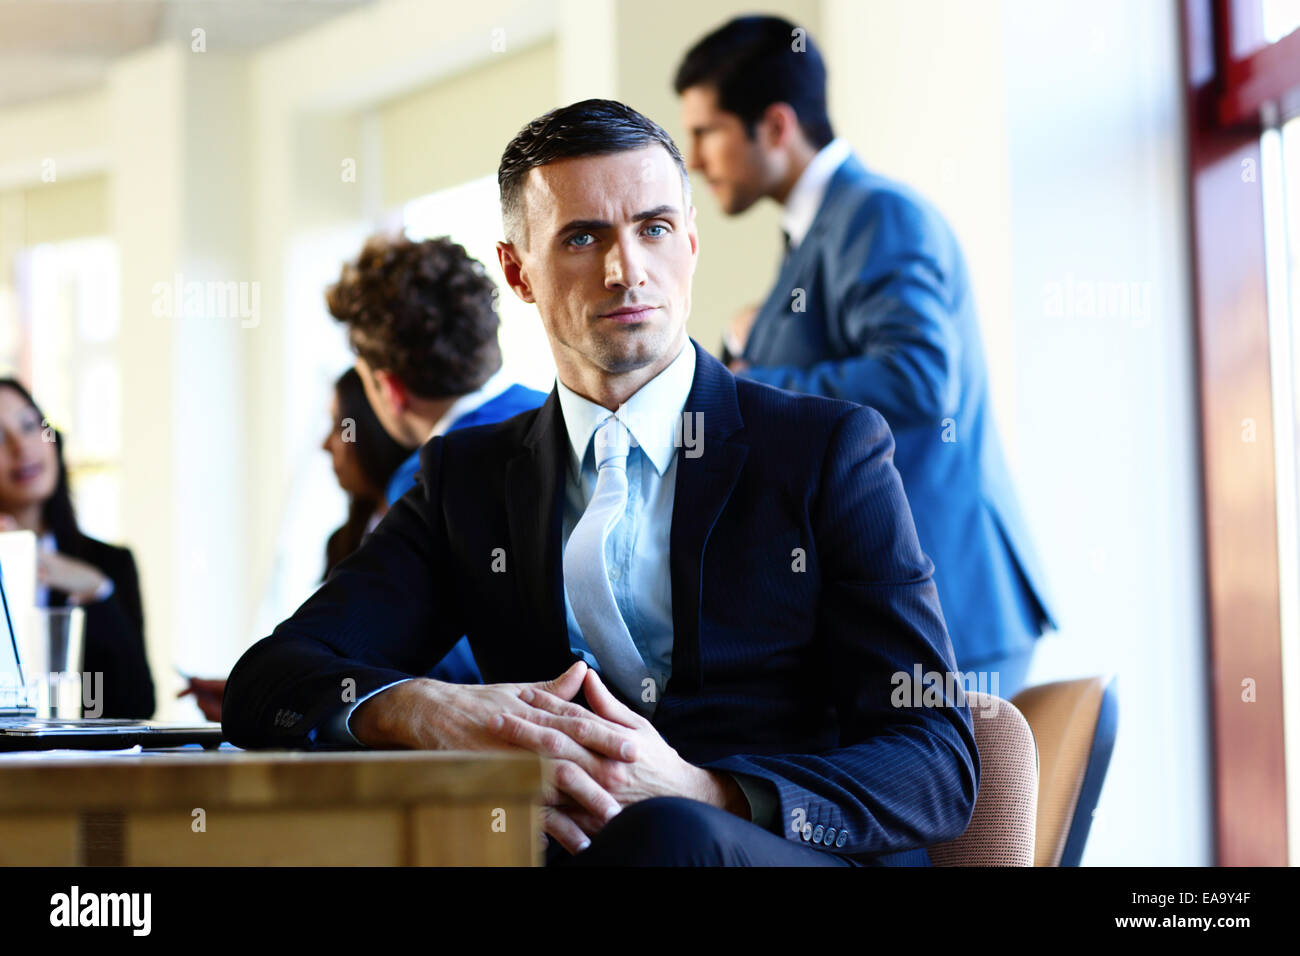 Confident businessman sitting at the table with colleagues on background - Stock Image